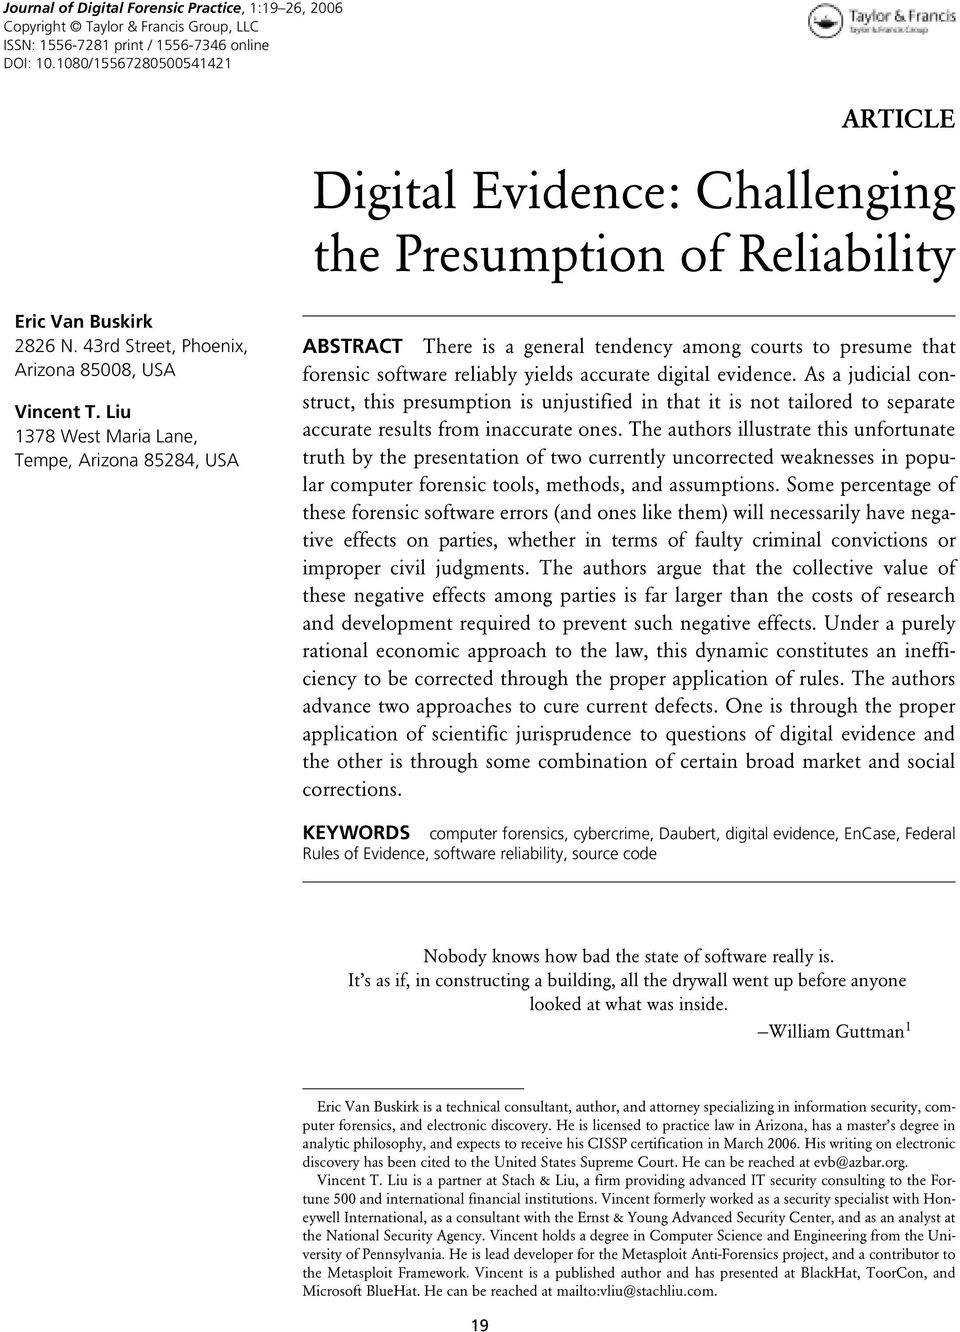 0 0 ARTICLE Digital Evidence: Challenging the Presumption of Reliability Challenging E. Van Buskirk the and Presumption V. T. Liu of Reliability Eric Van Buskirk 2826 N.